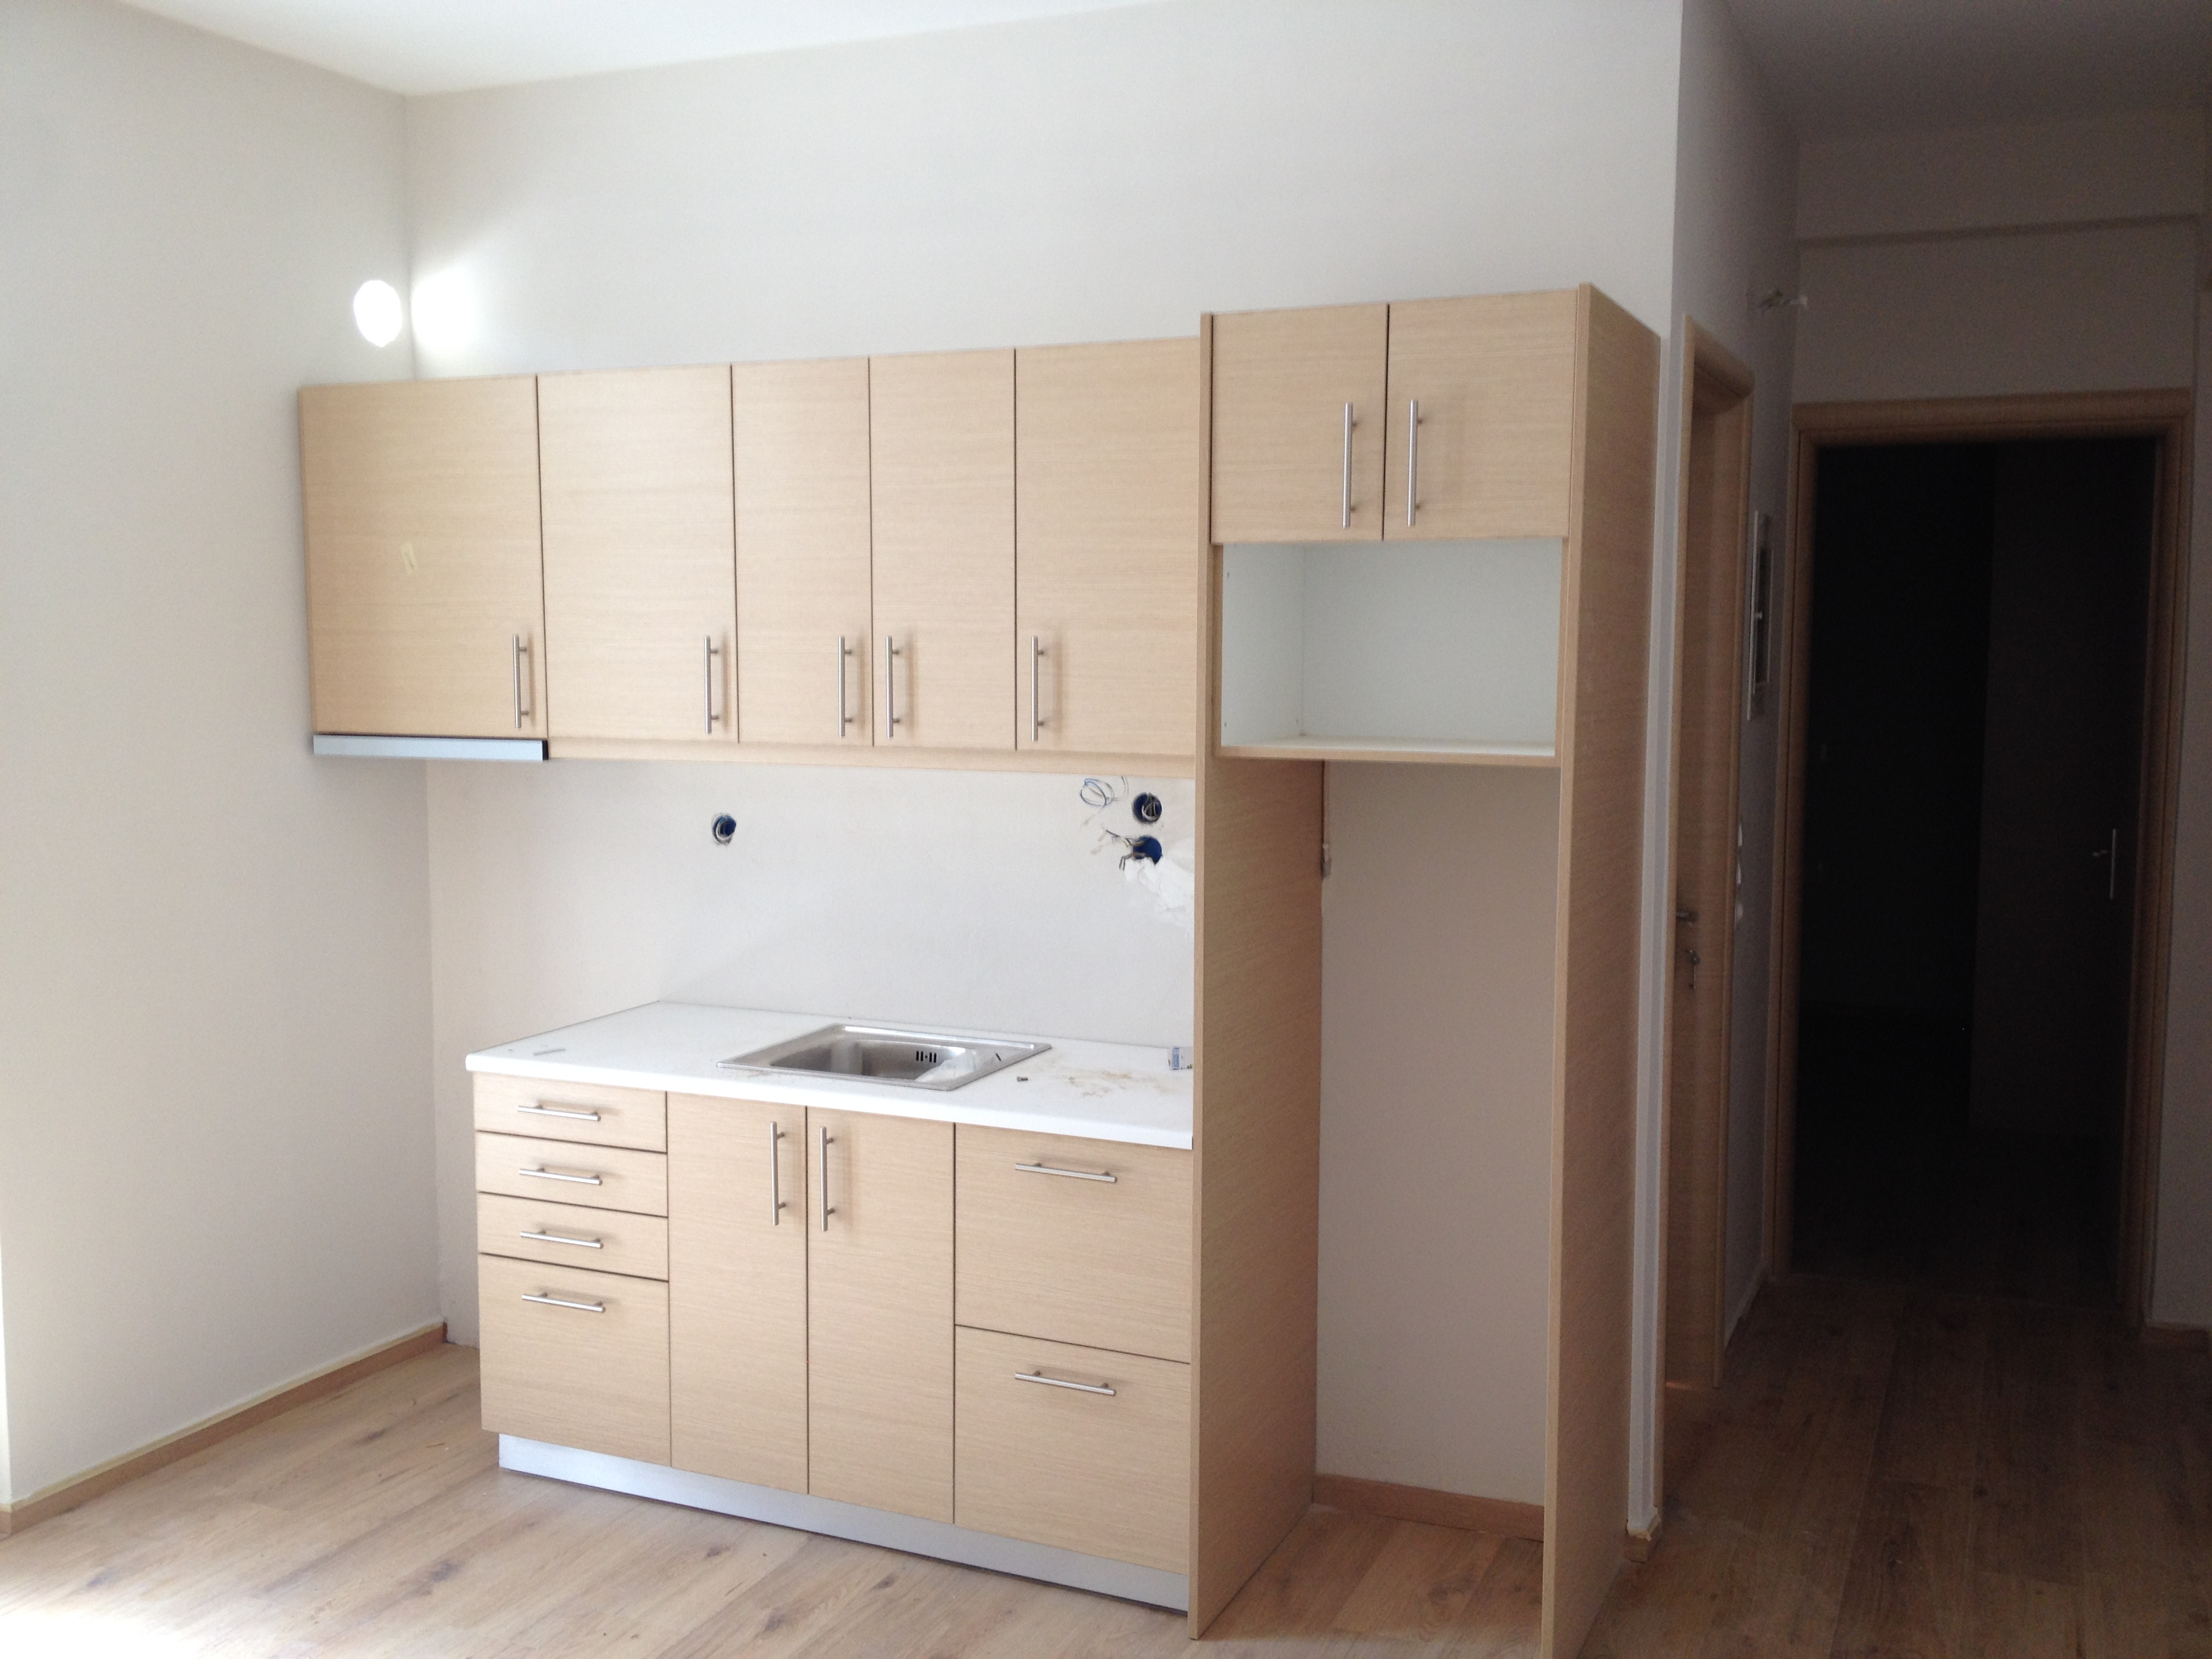 Kitchen cabinets renovation - Gythio